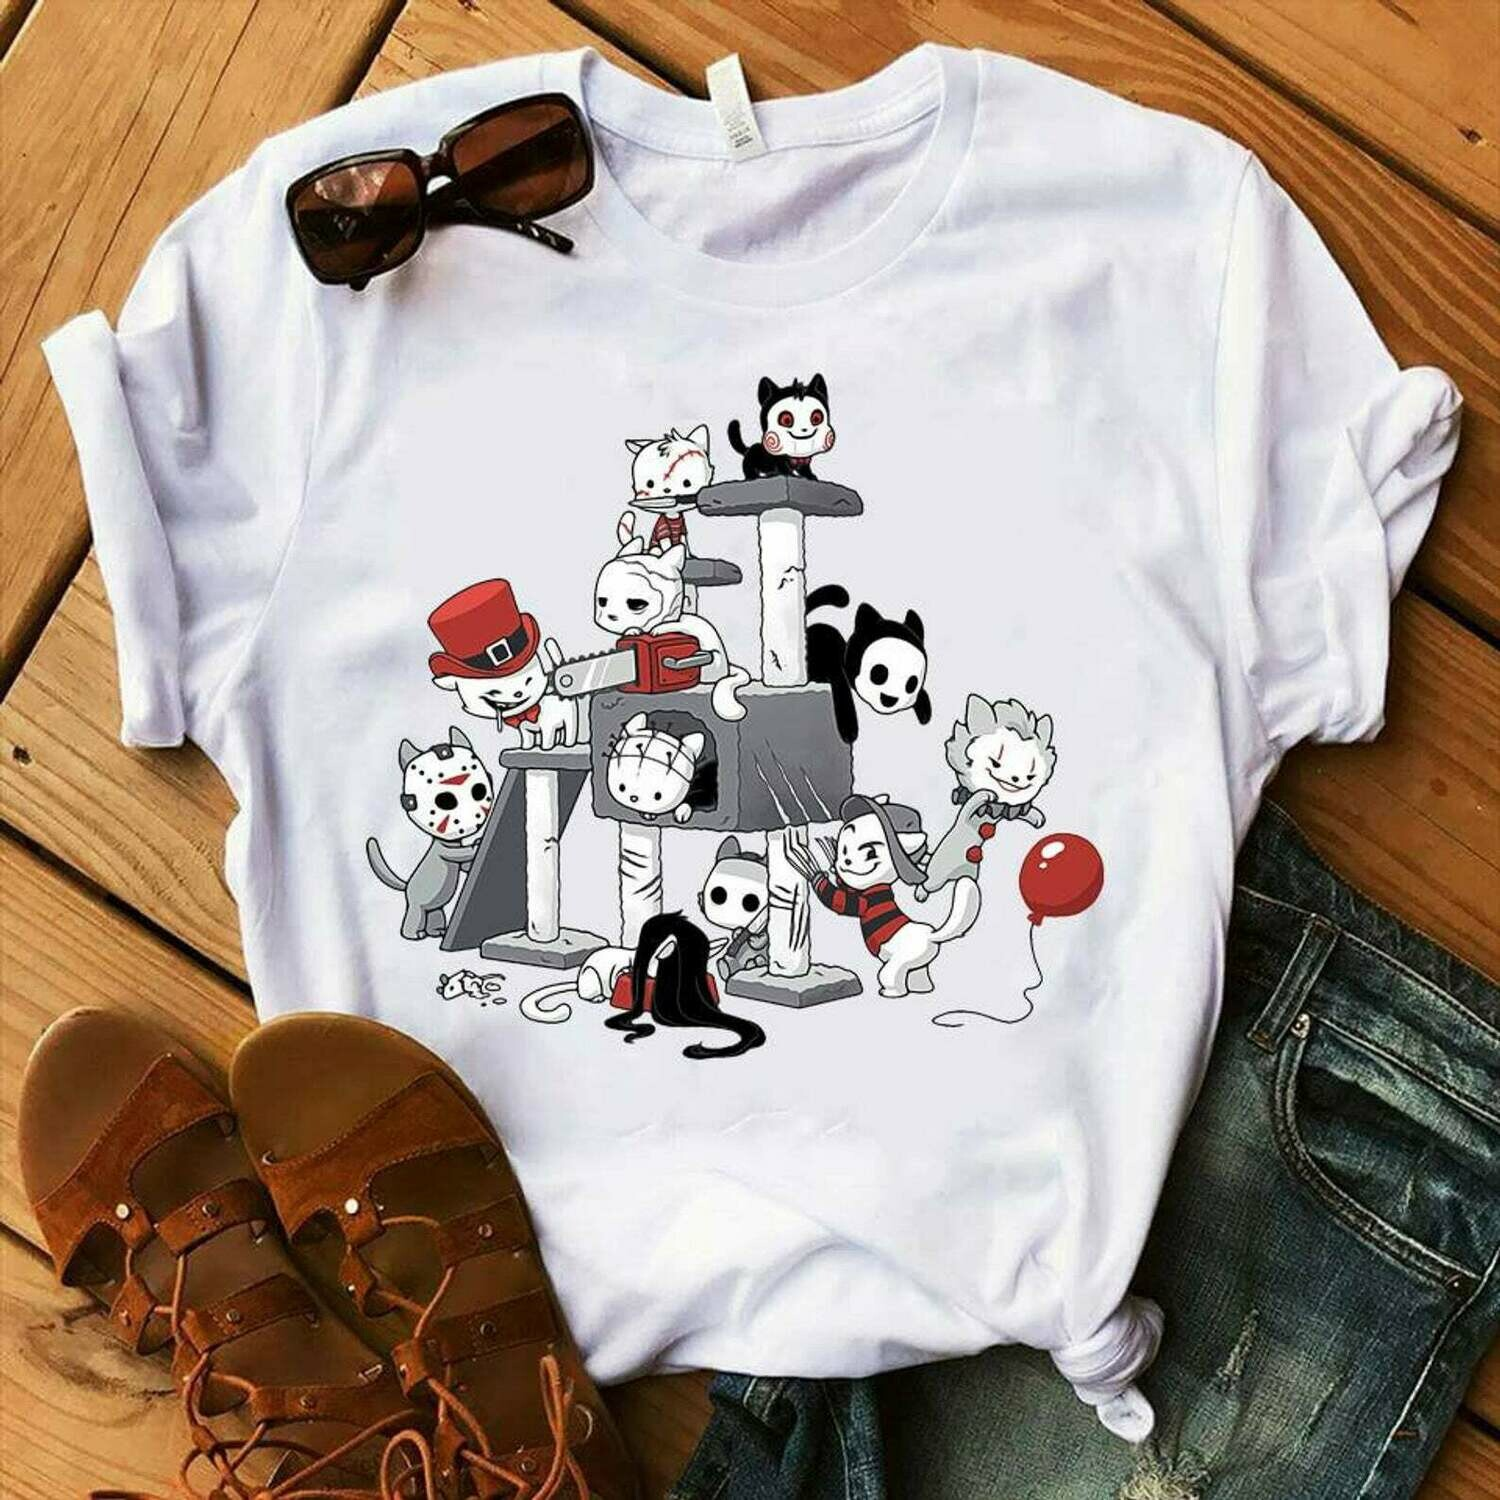 Funny Friends Halloween Shirt - Perfect Gift For Cat Lovers Who Also Loves Horror Movies Shirts Cute Halloween Movies Fan Gifts, pumpkin shirt, fall shirts, halloween shirt, womens fall shirt, hocus